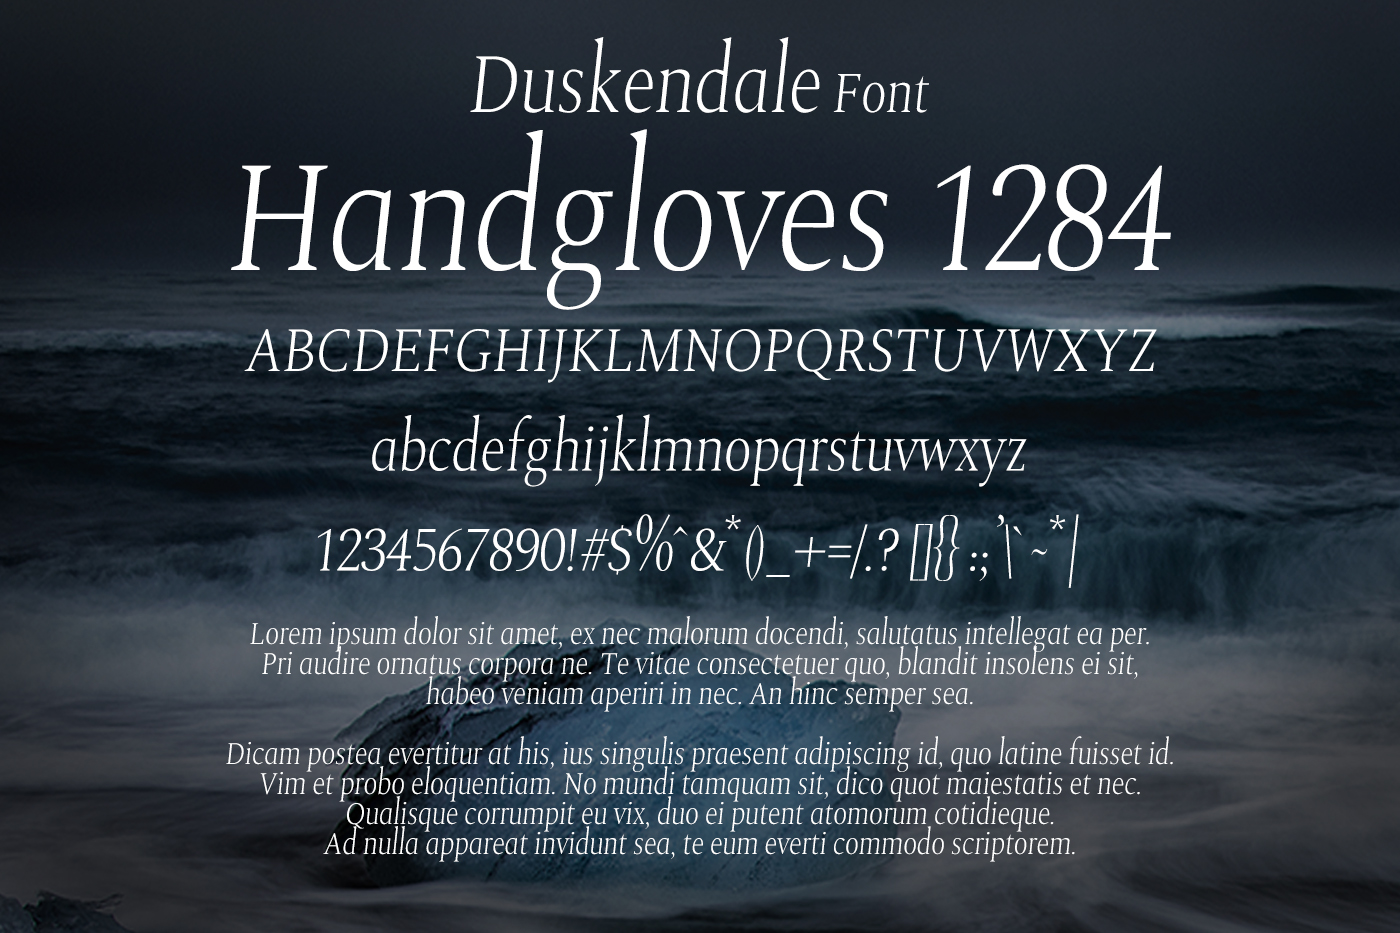 Duskendale Font example image 2